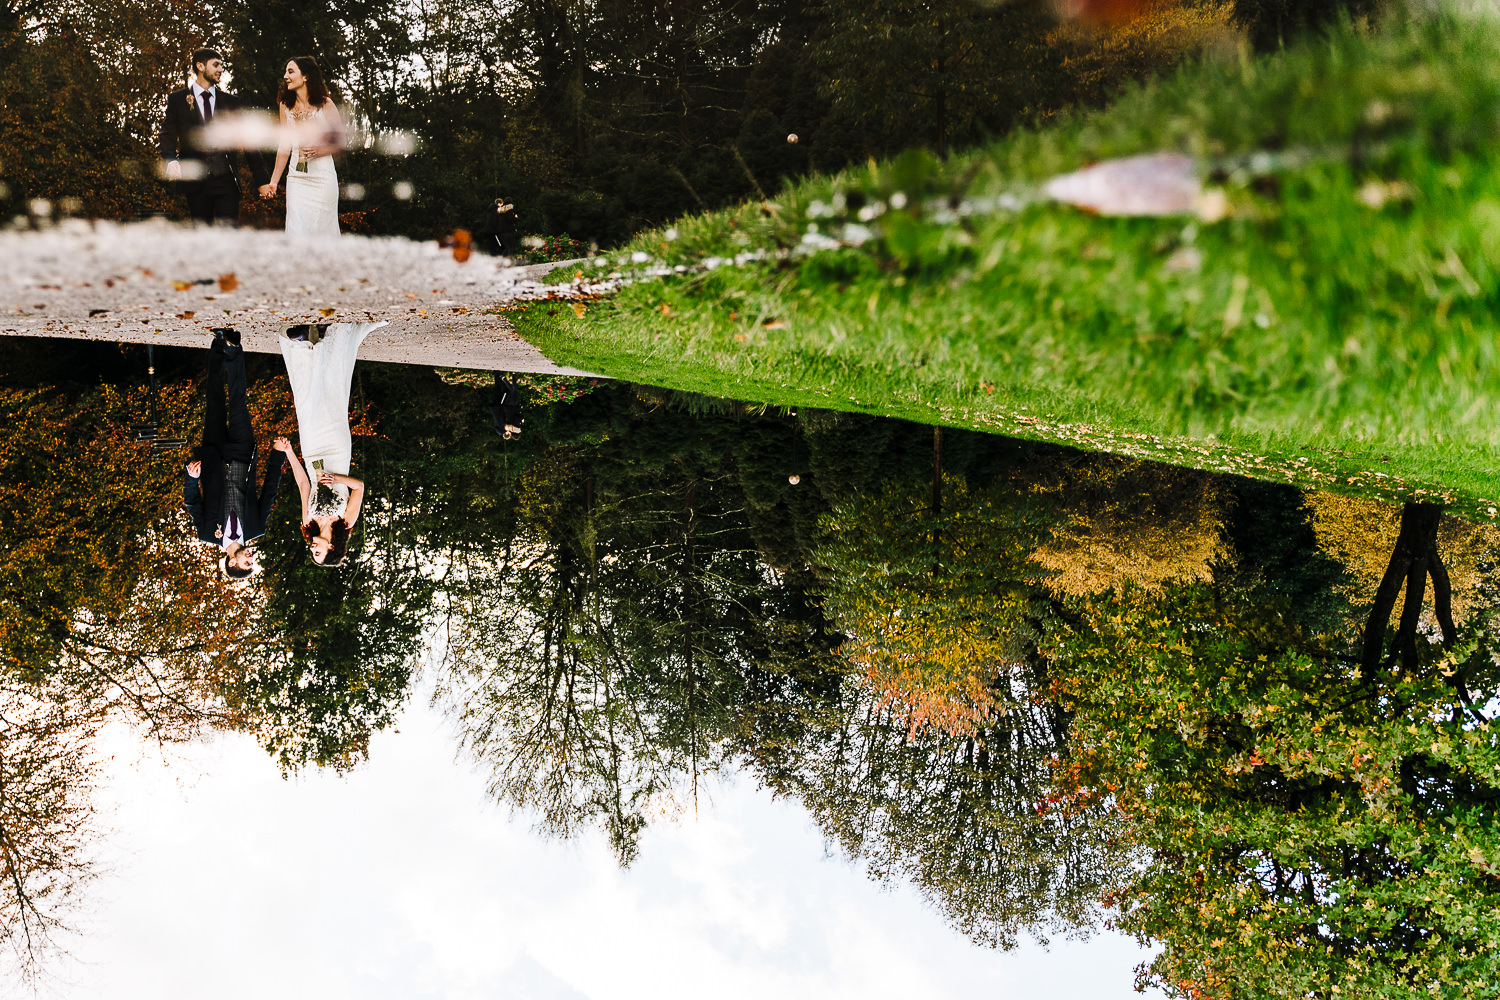 Bride and groom reflections in water